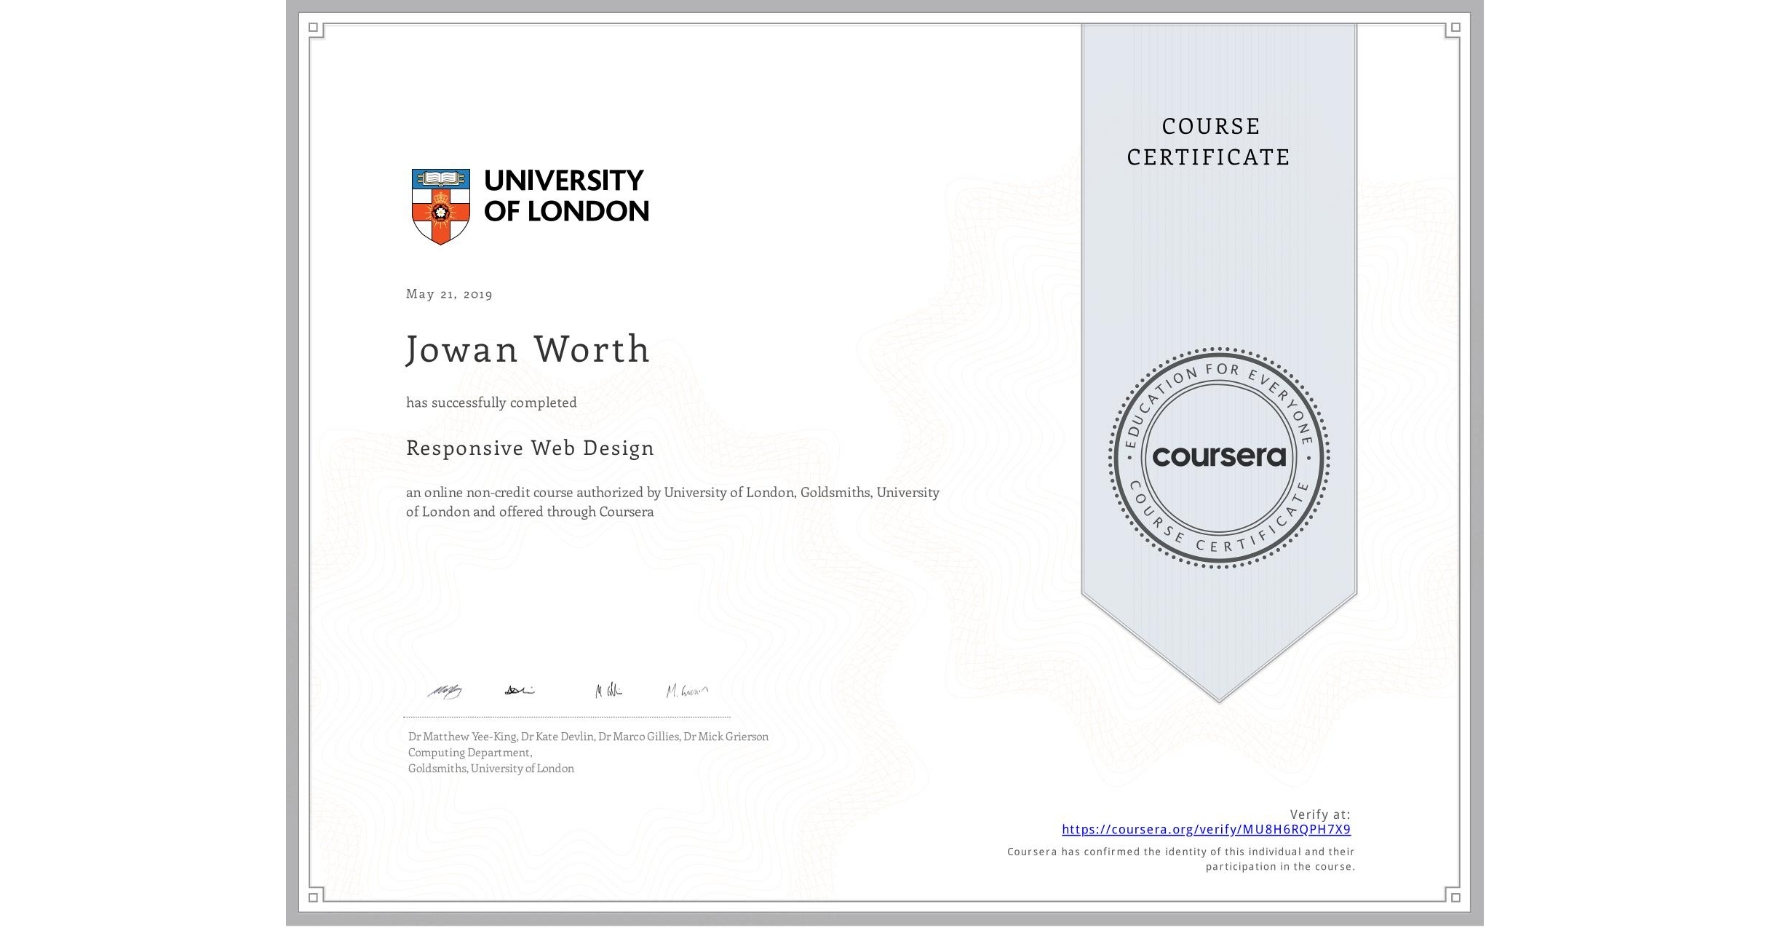 View certificate for Jowan Worth, Responsive Web Design, an online non-credit course authorized by University of London & Goldsmiths, University of London and offered through Coursera